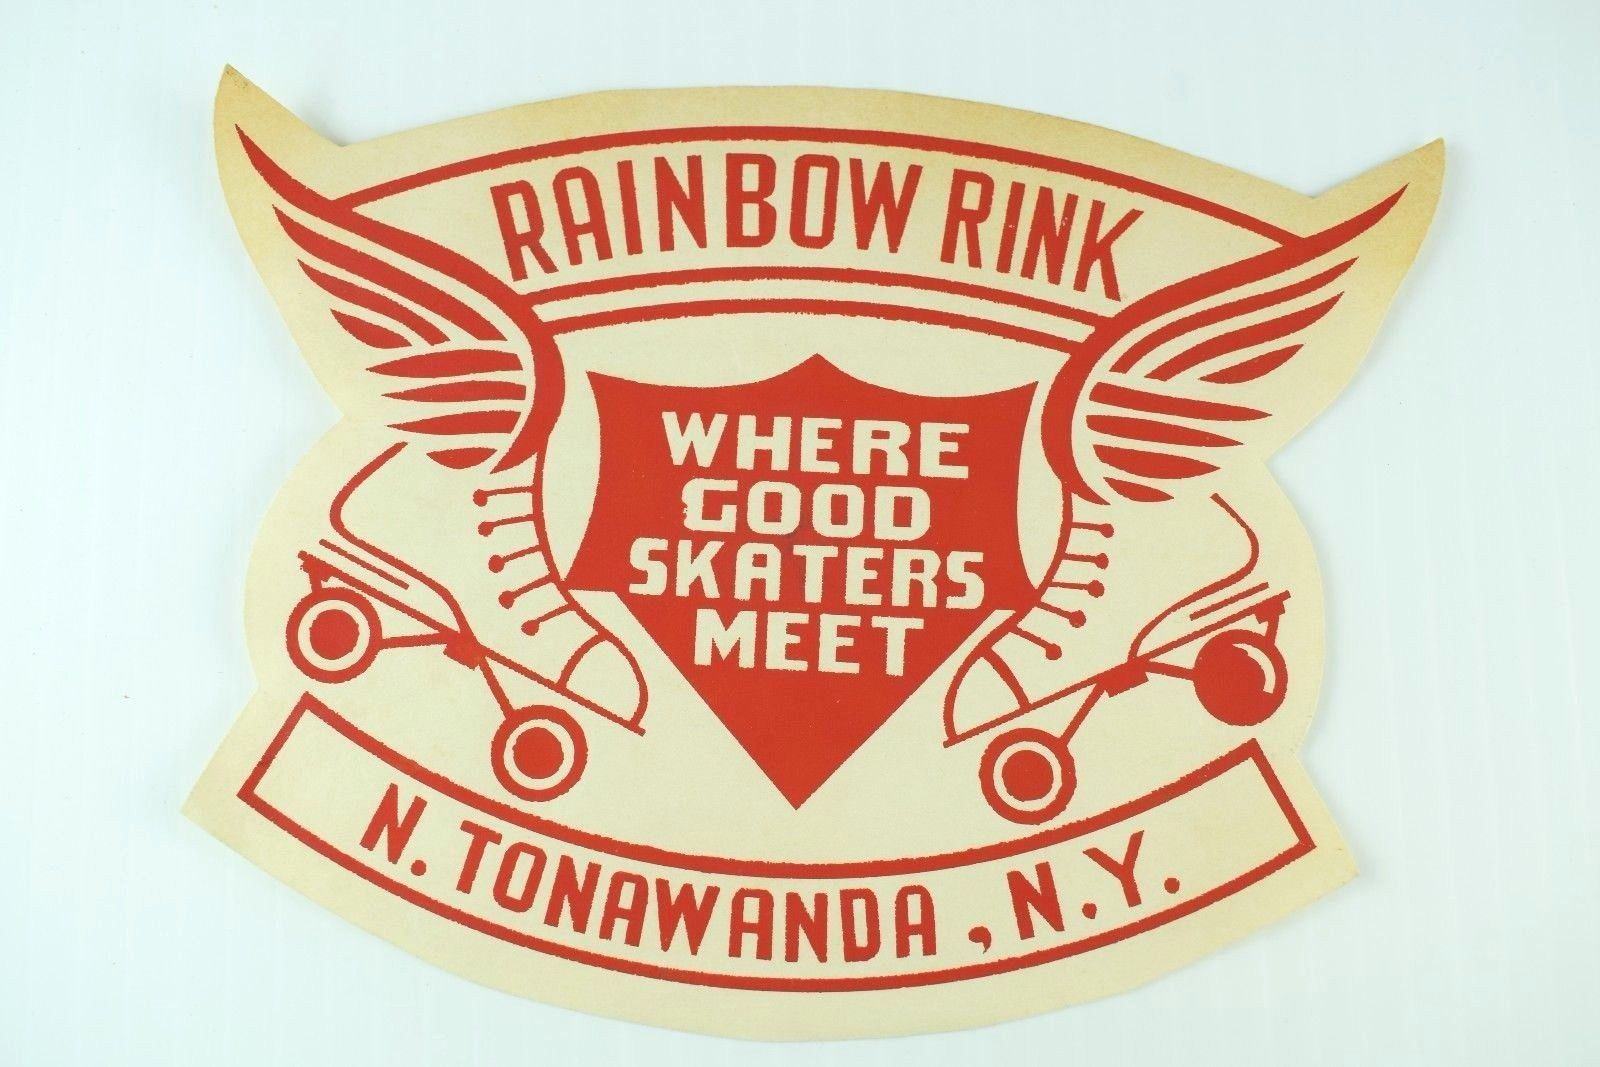 Rainbow Rink - Where Good Skaters Meet, sticker (c1950).jpg